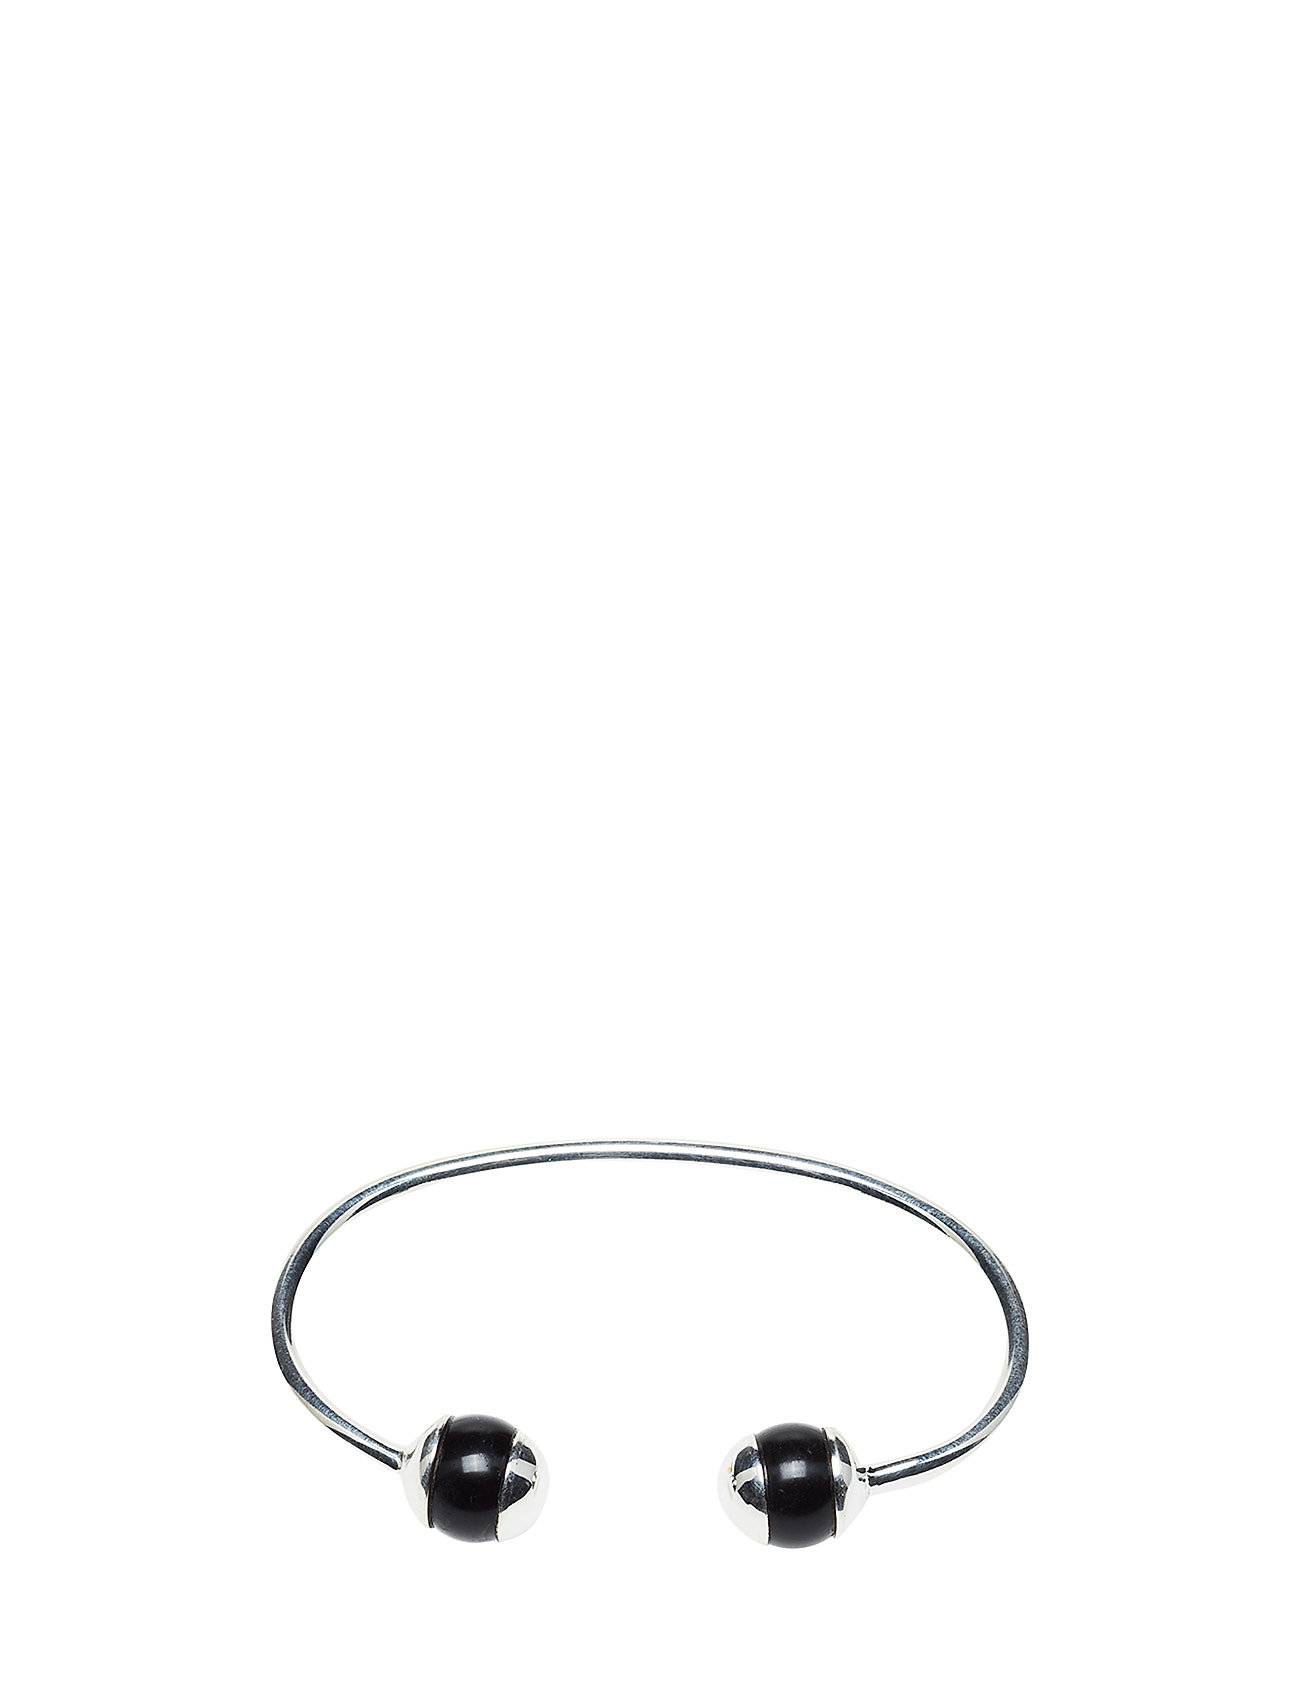 Syster P Deco Ball Bangle Silver Black Onyx